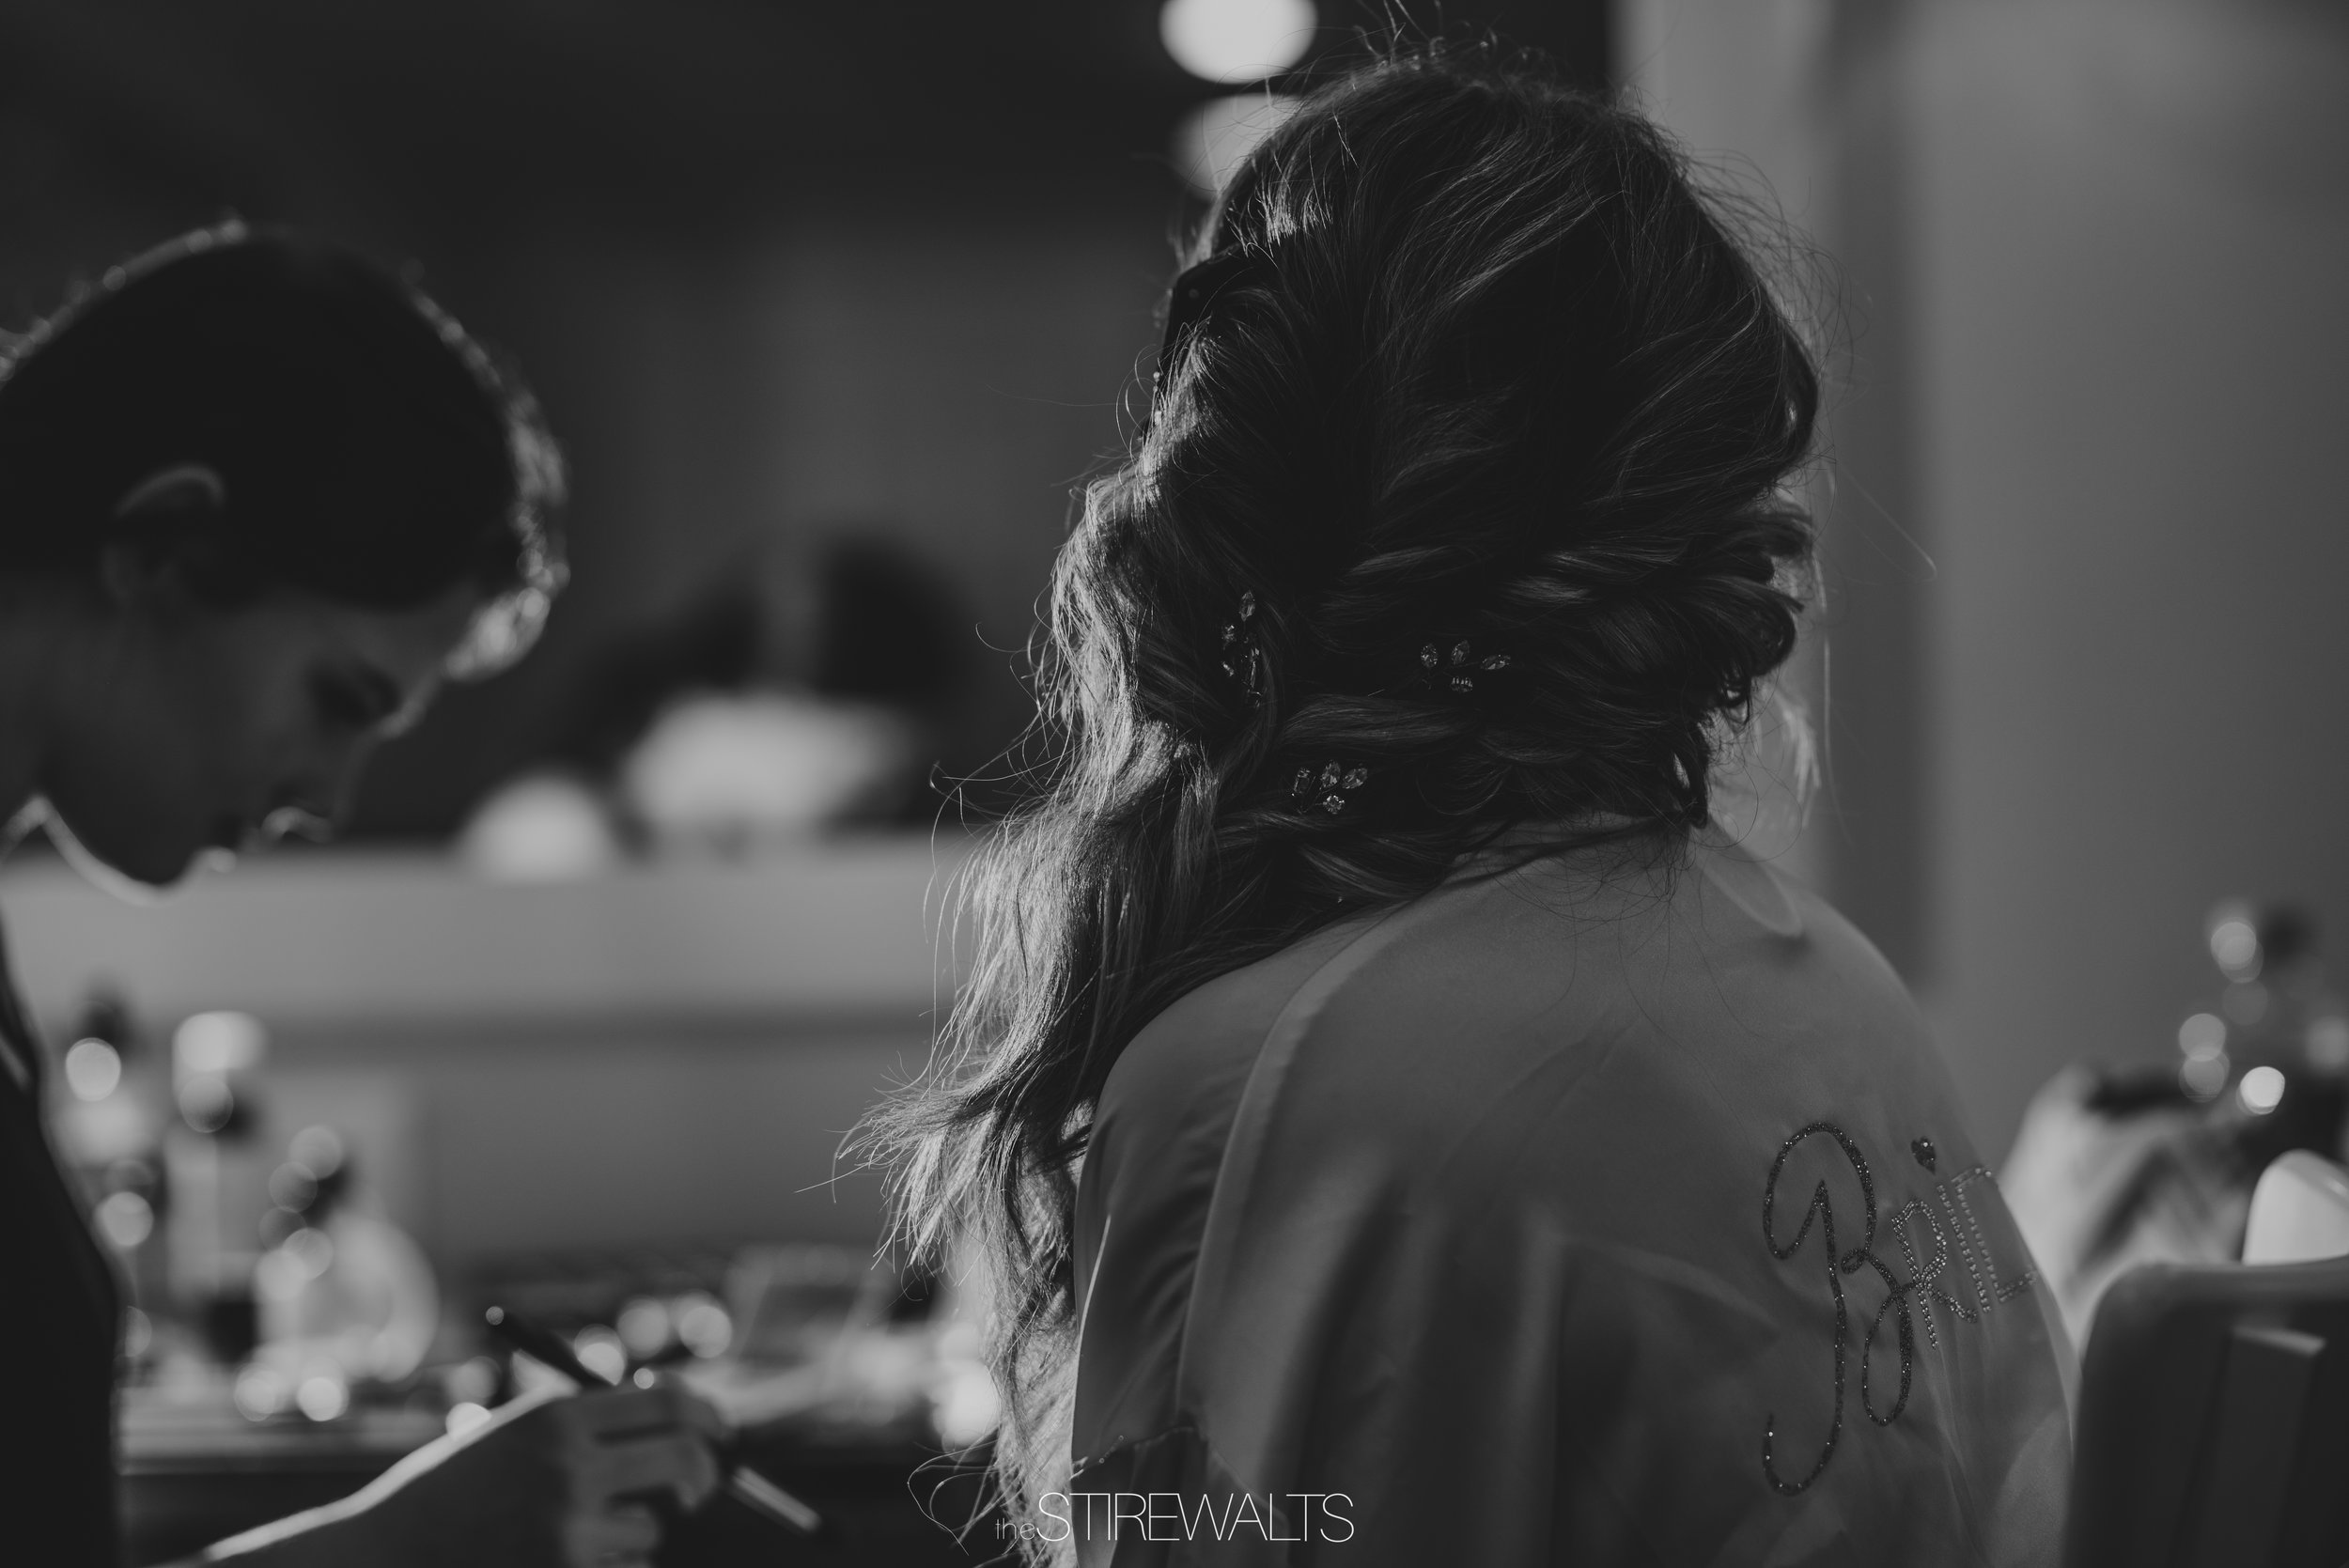 Kayla.Jay.Wedding.Blog.2018.©TheStirewalts-5.jpg